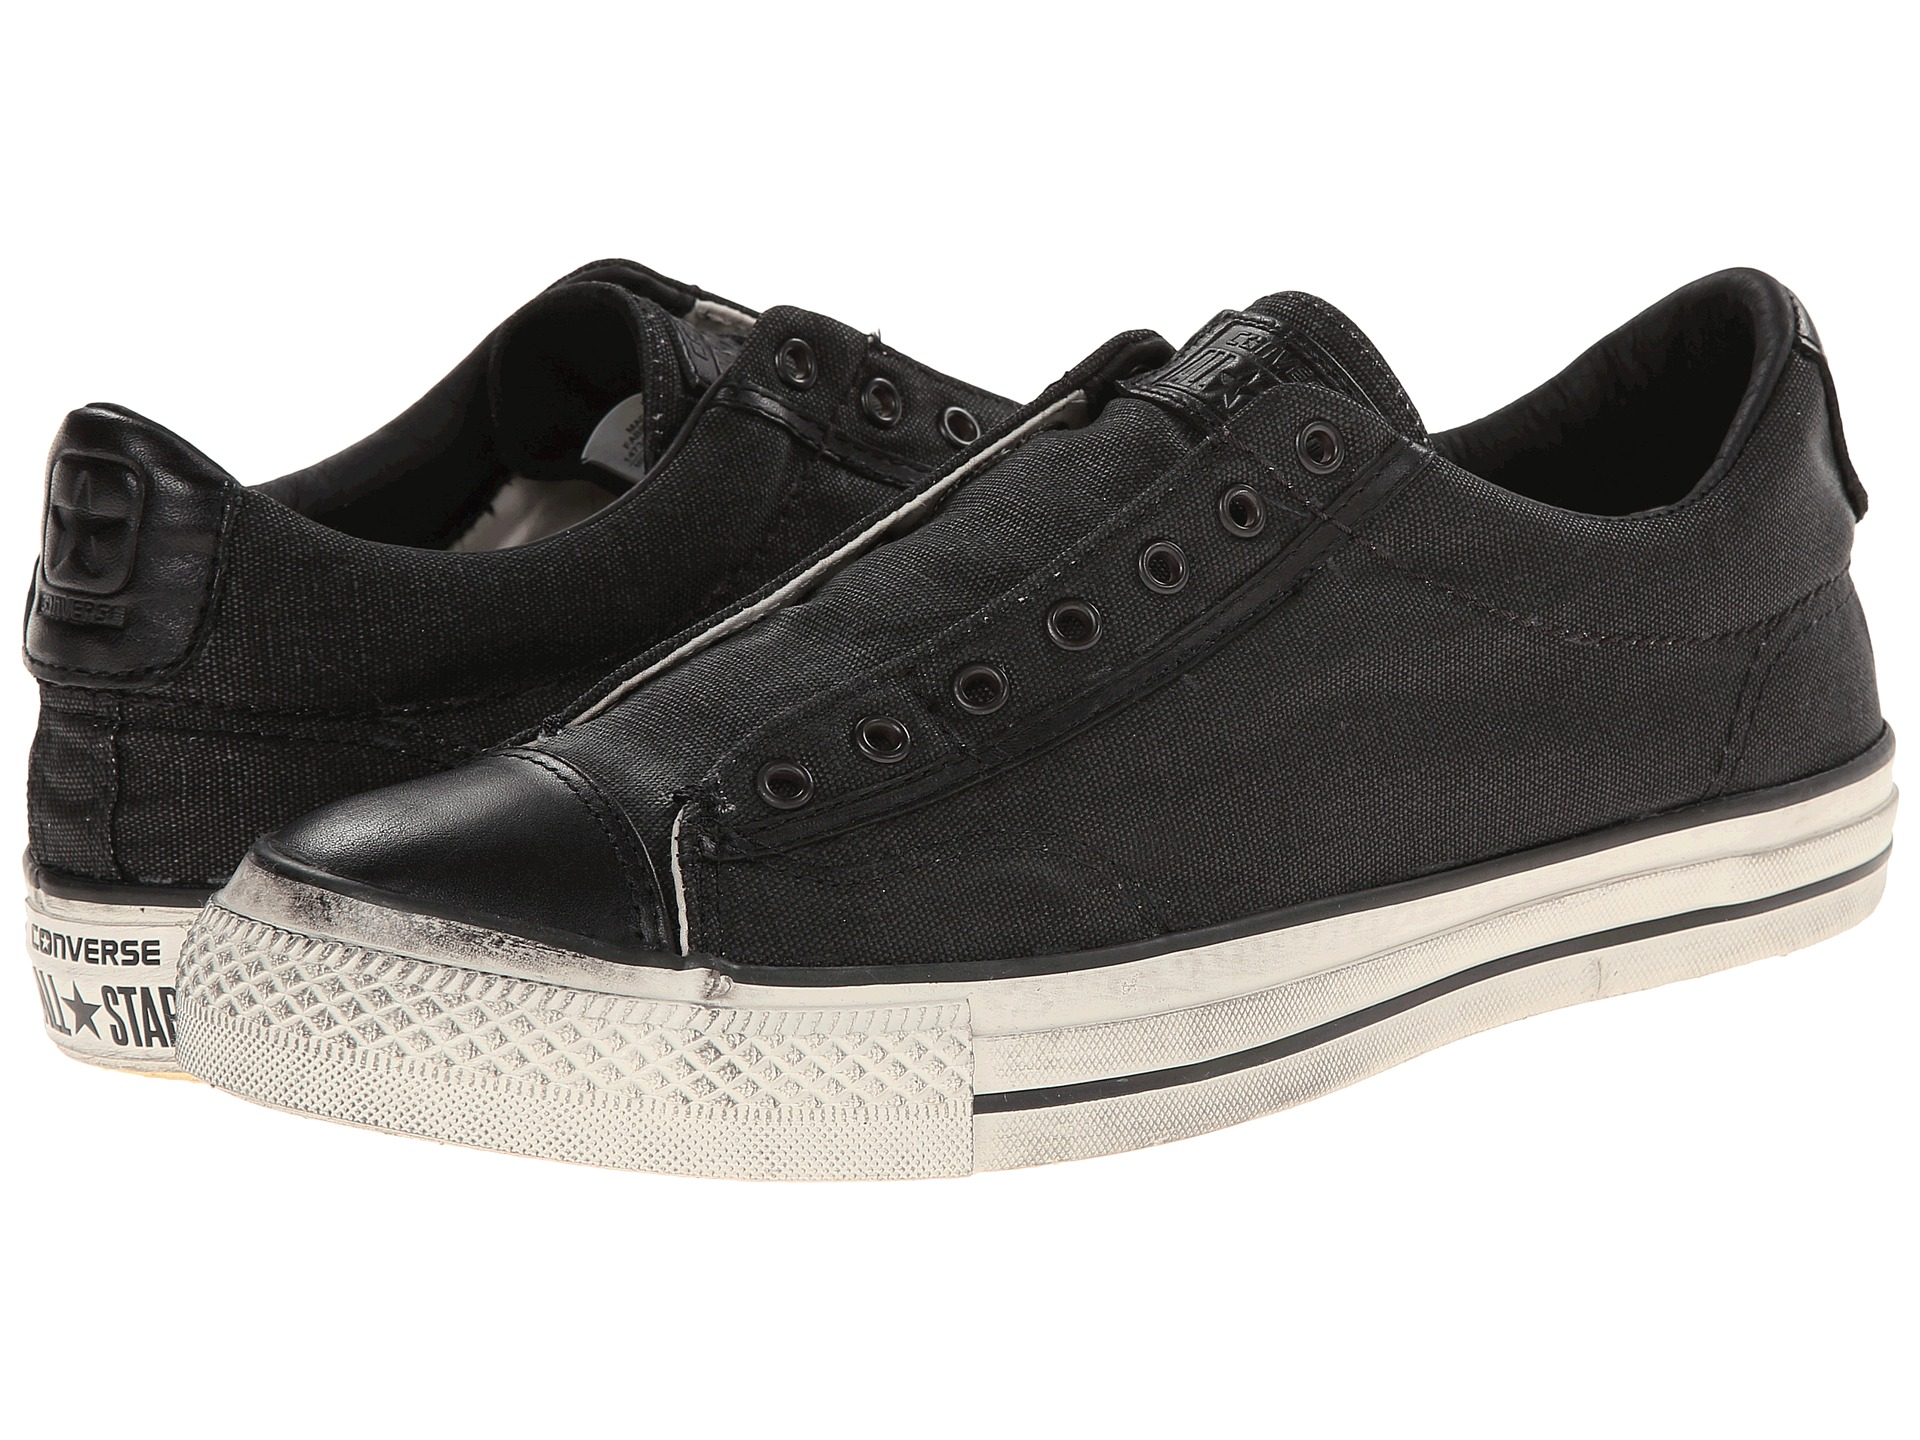 converse by john varvatos slip on